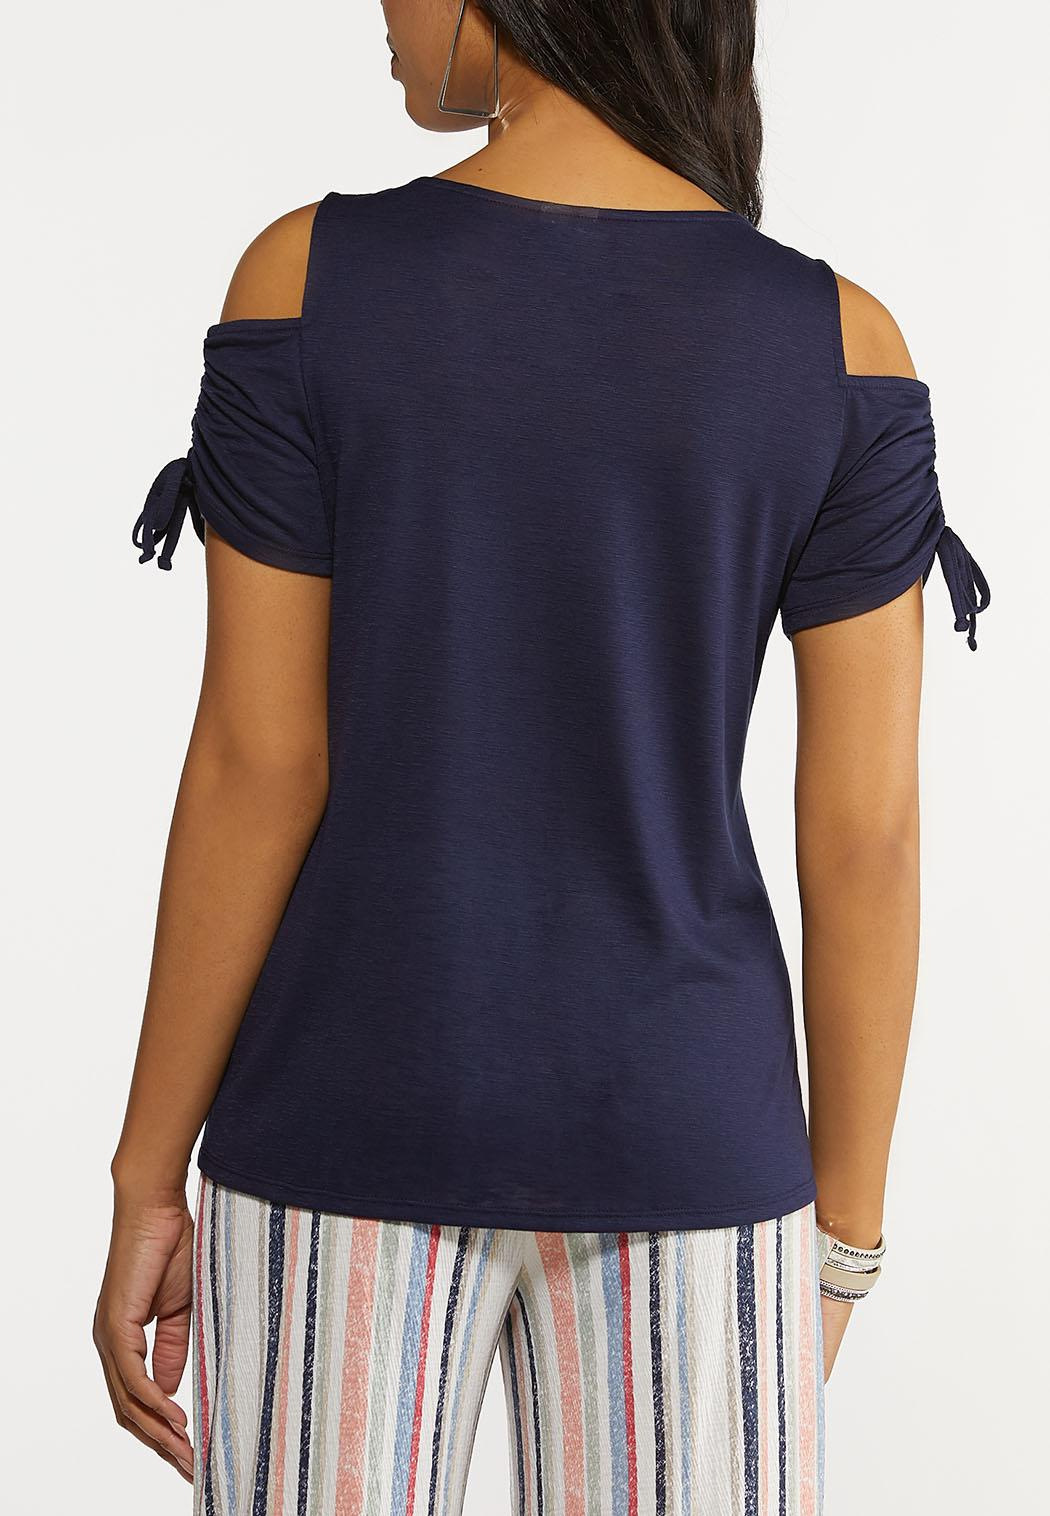 Plus Size Live In The Moment Top (Item #44291744)